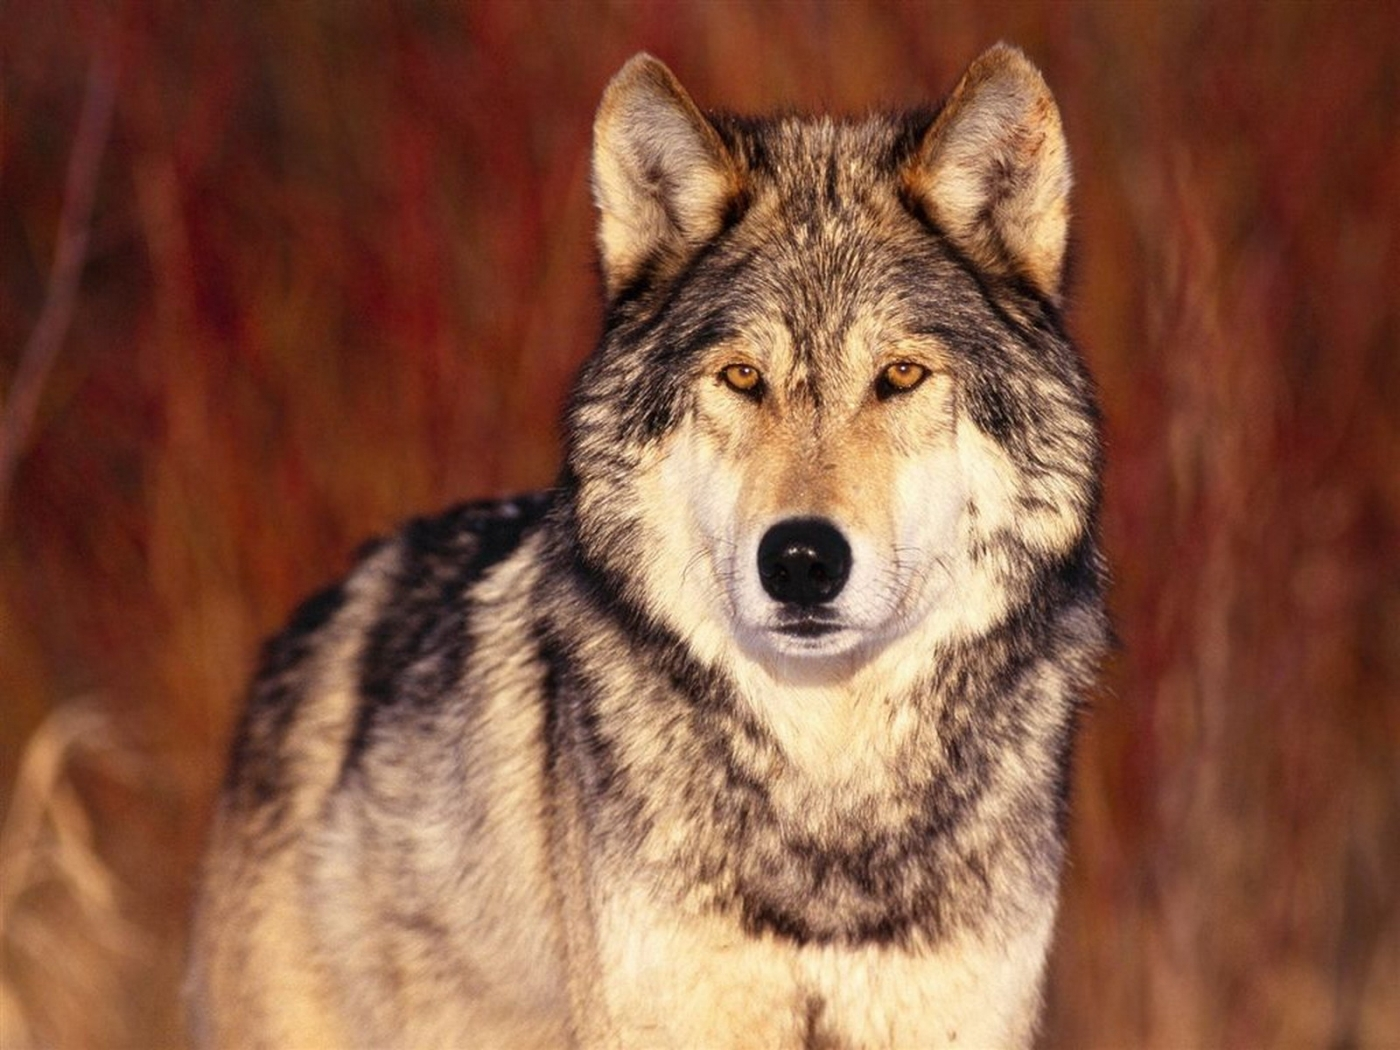 44643 download wallpaper Animals, Wolfs screensavers and pictures for free